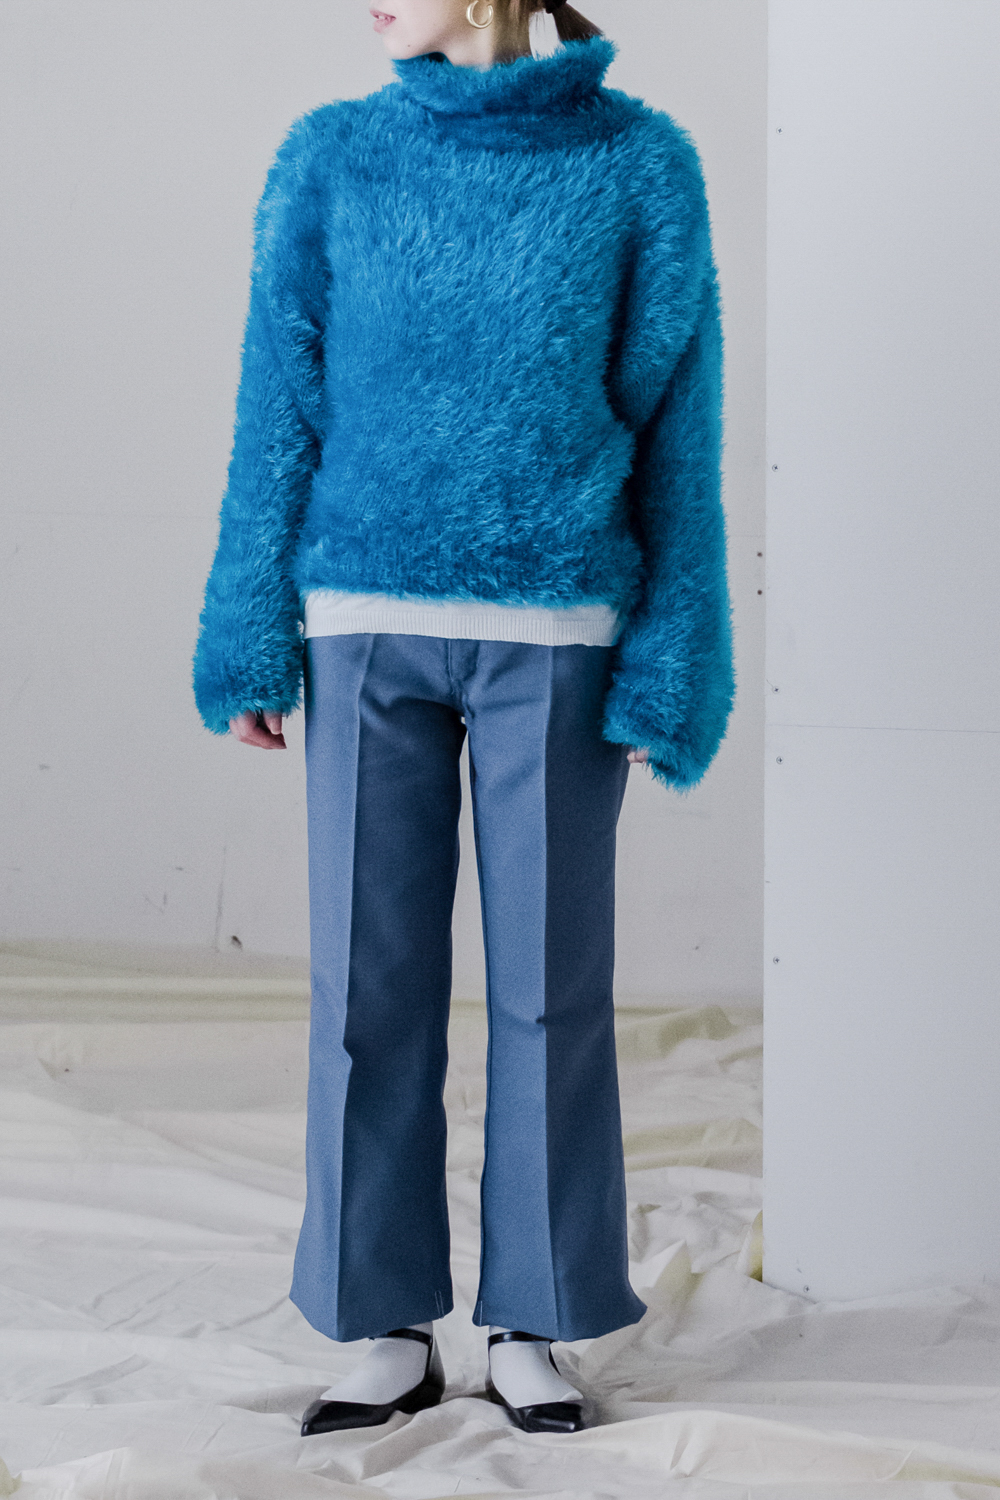 80's Turquoise Blue Mohair Knit